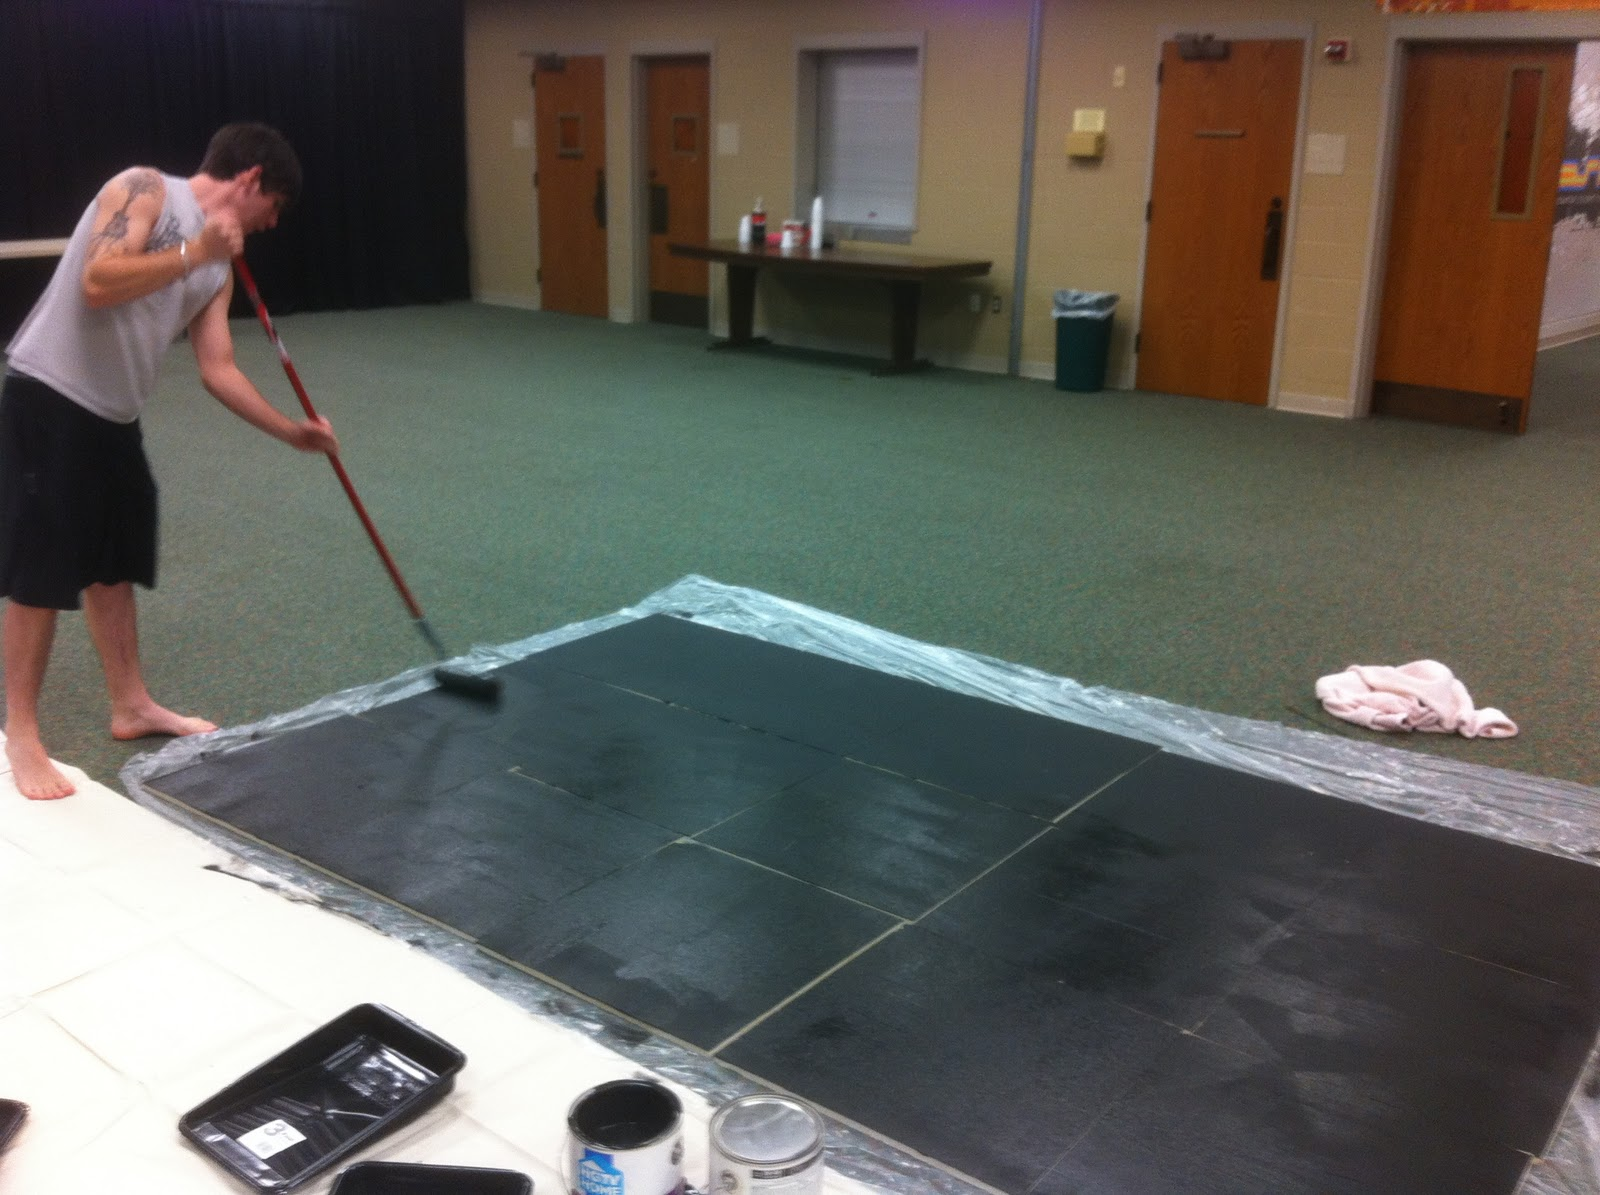 How to paint ceiling tiles image collections tile flooring how to paint ceiling tiles image collections tile flooring how to paint ceiling tiles choice image doublecrazyfo Image collections